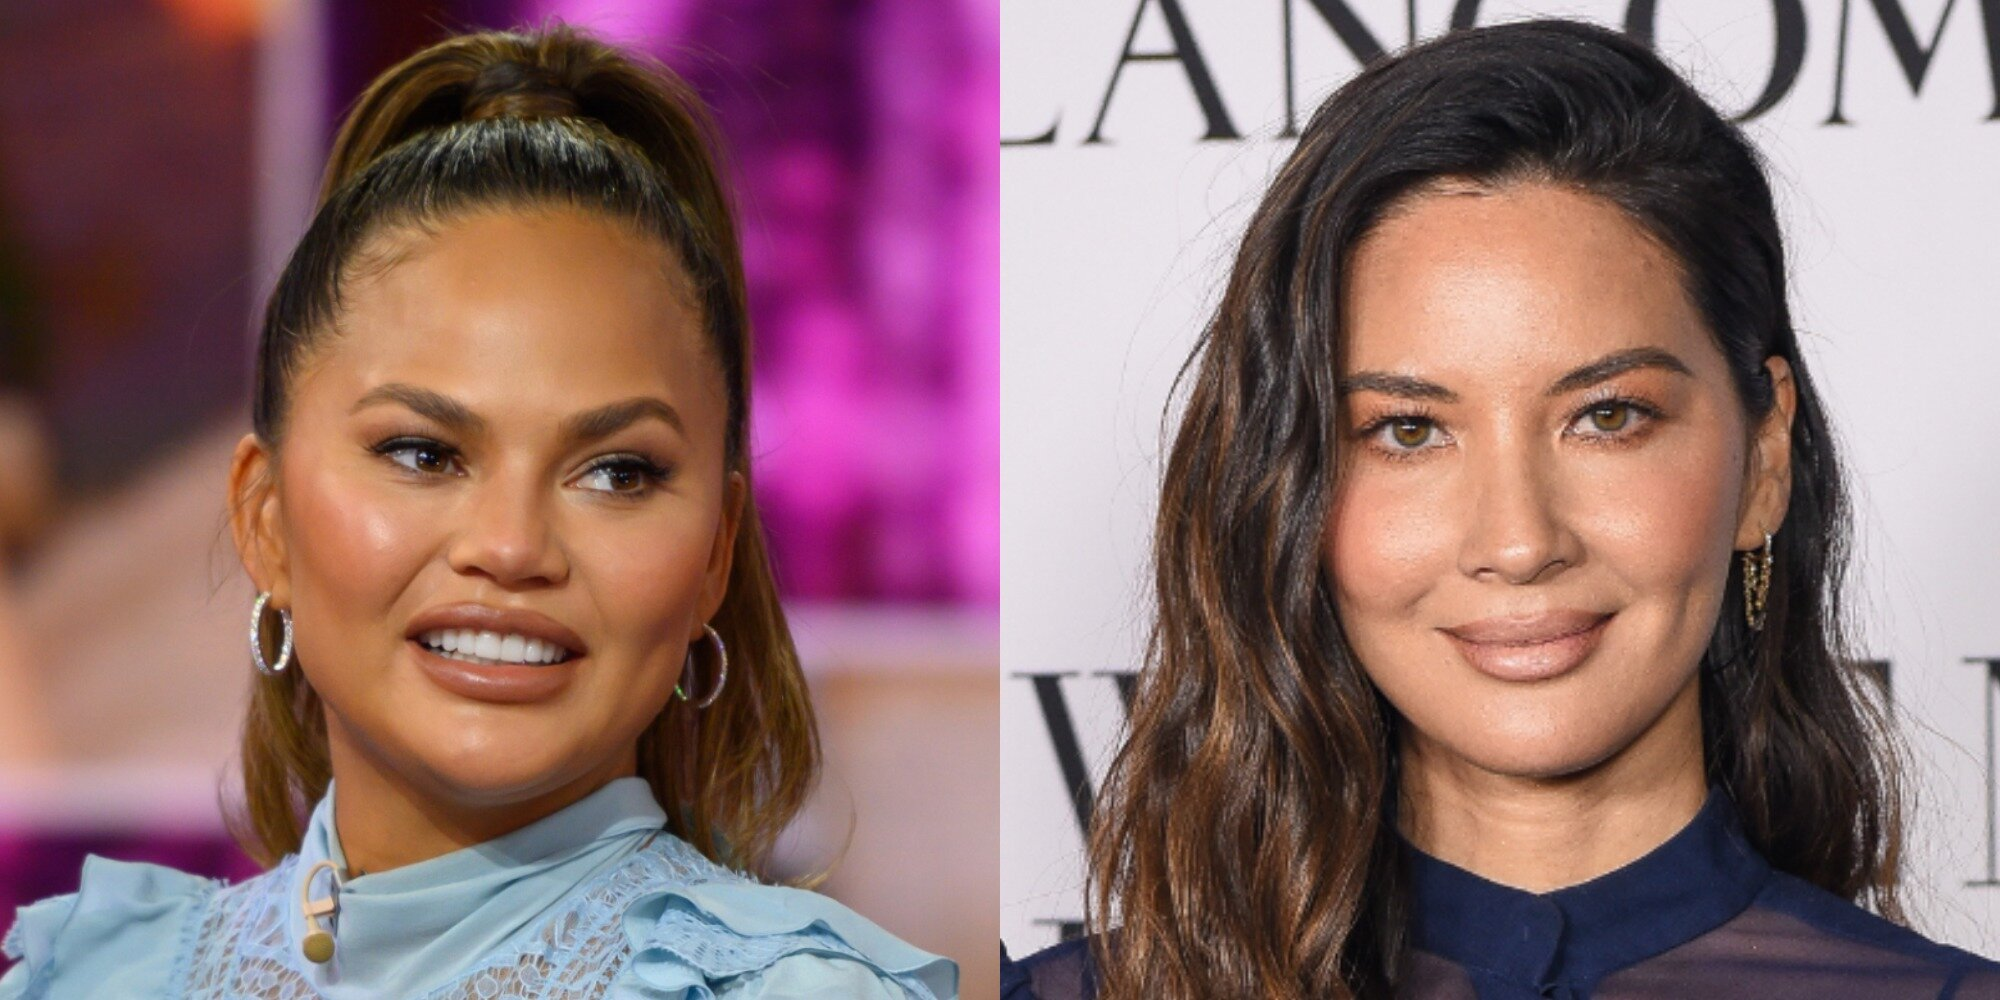 Chrissy Teigen and Olivia Munn Both Love This Face Oil For Youthful-Looking, Firm Skin